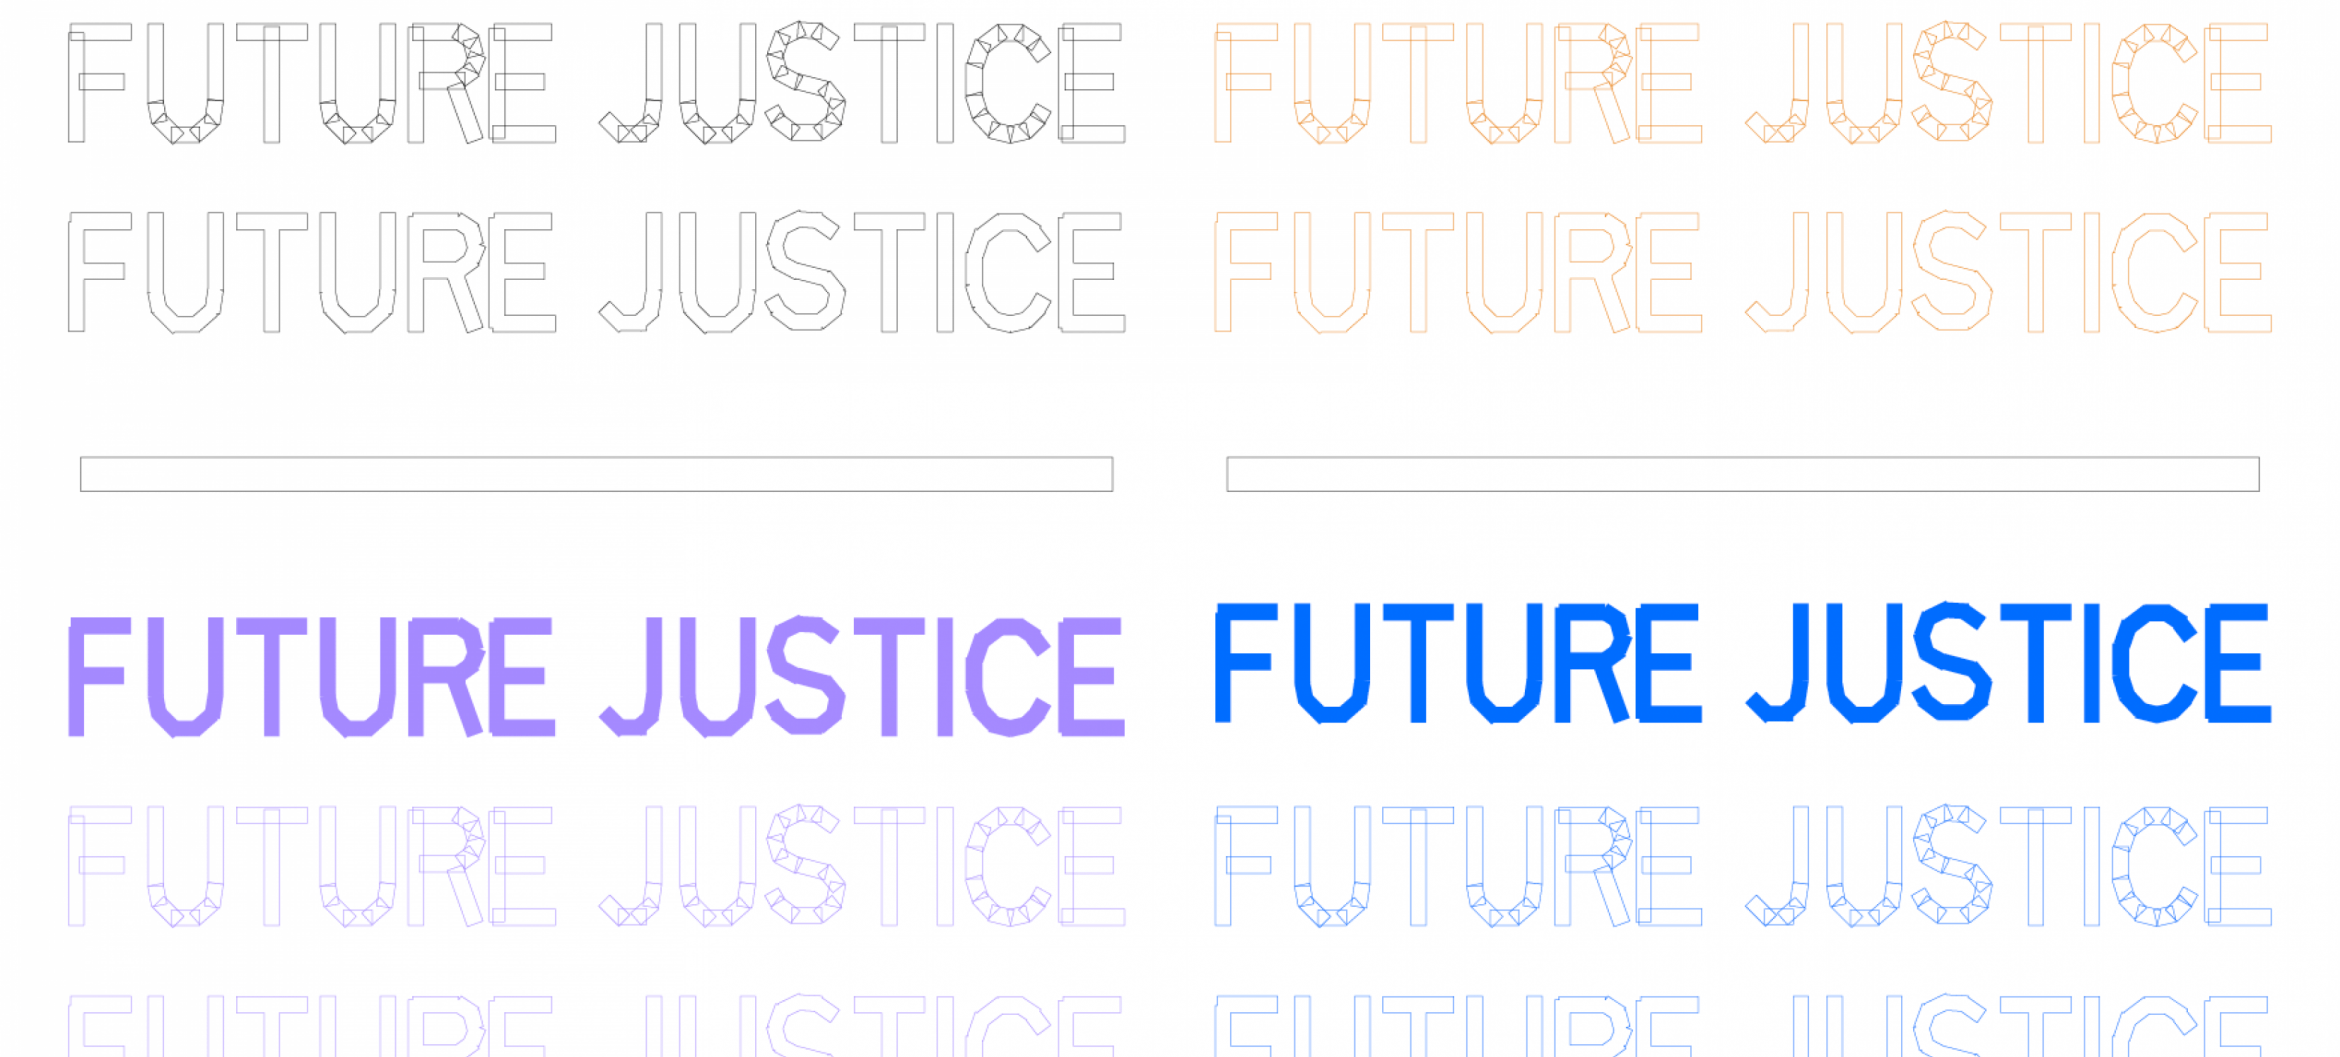 Future Justice: An inquiry into the way things are, were, should be